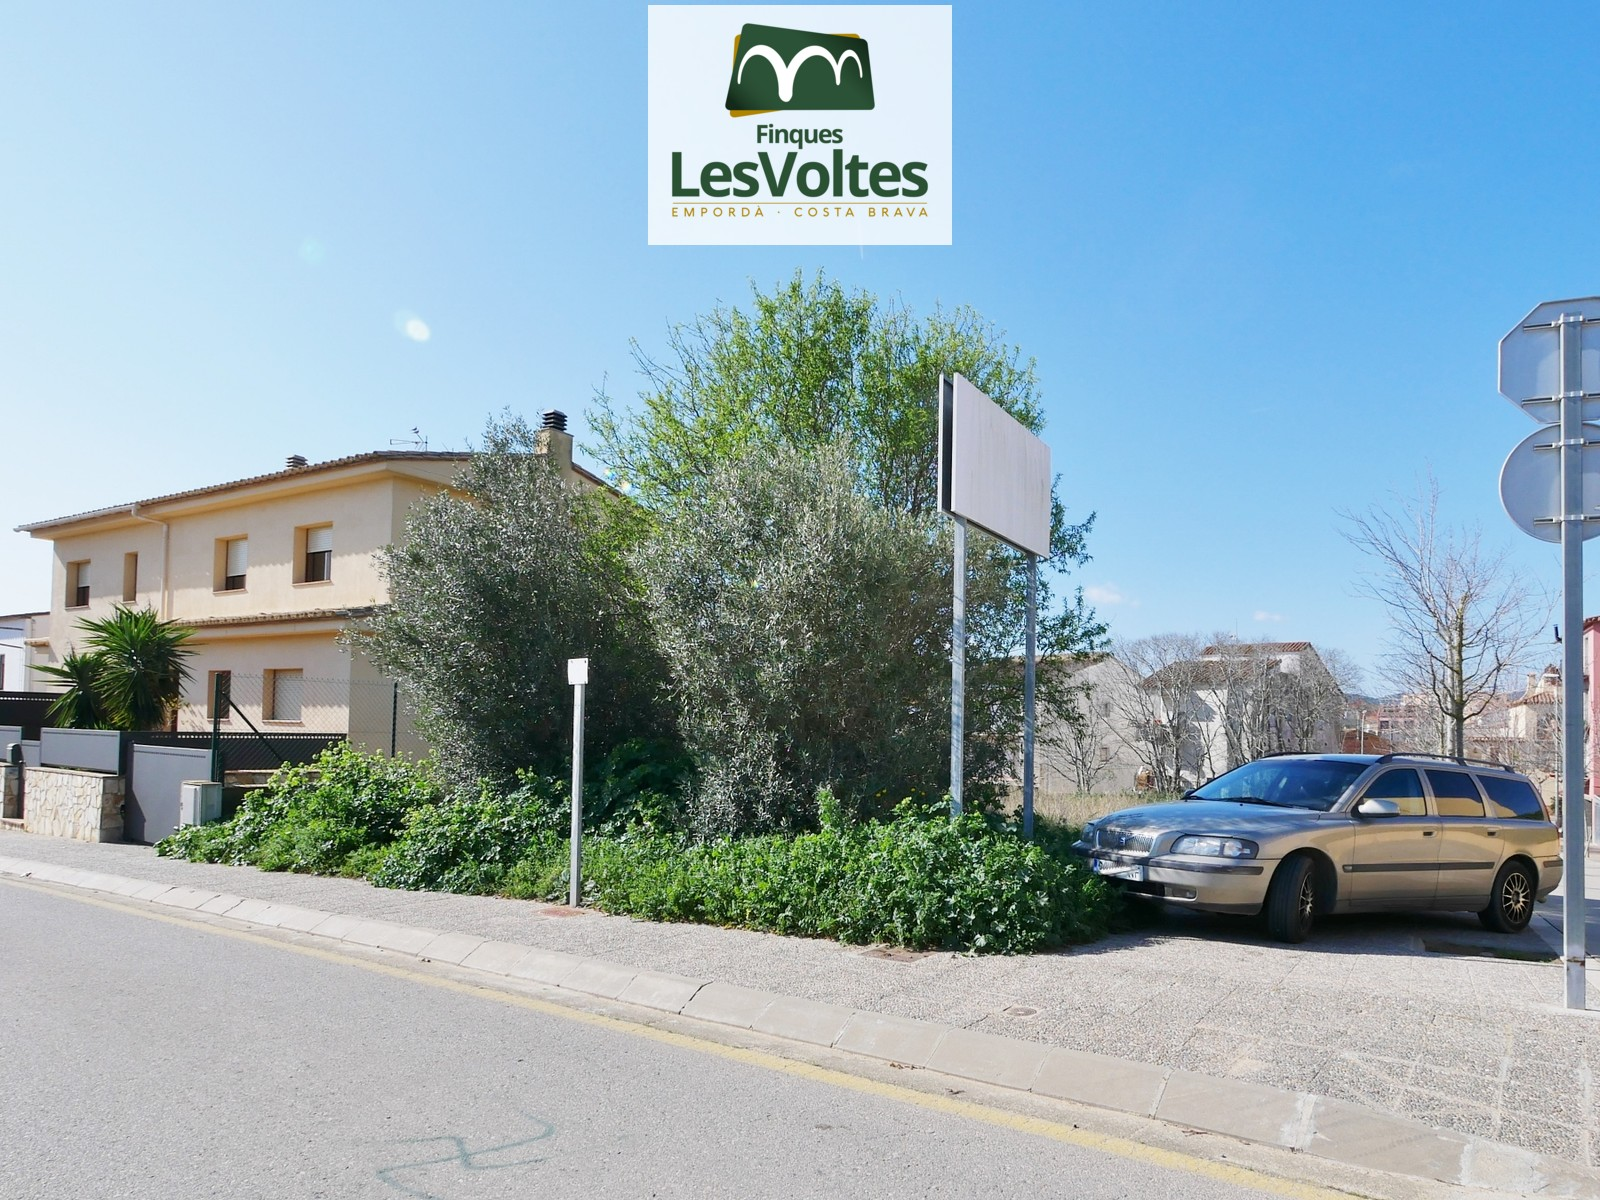 4 Building plots from 276 m2 for sale in a very quiet residential area of Palafrugell.